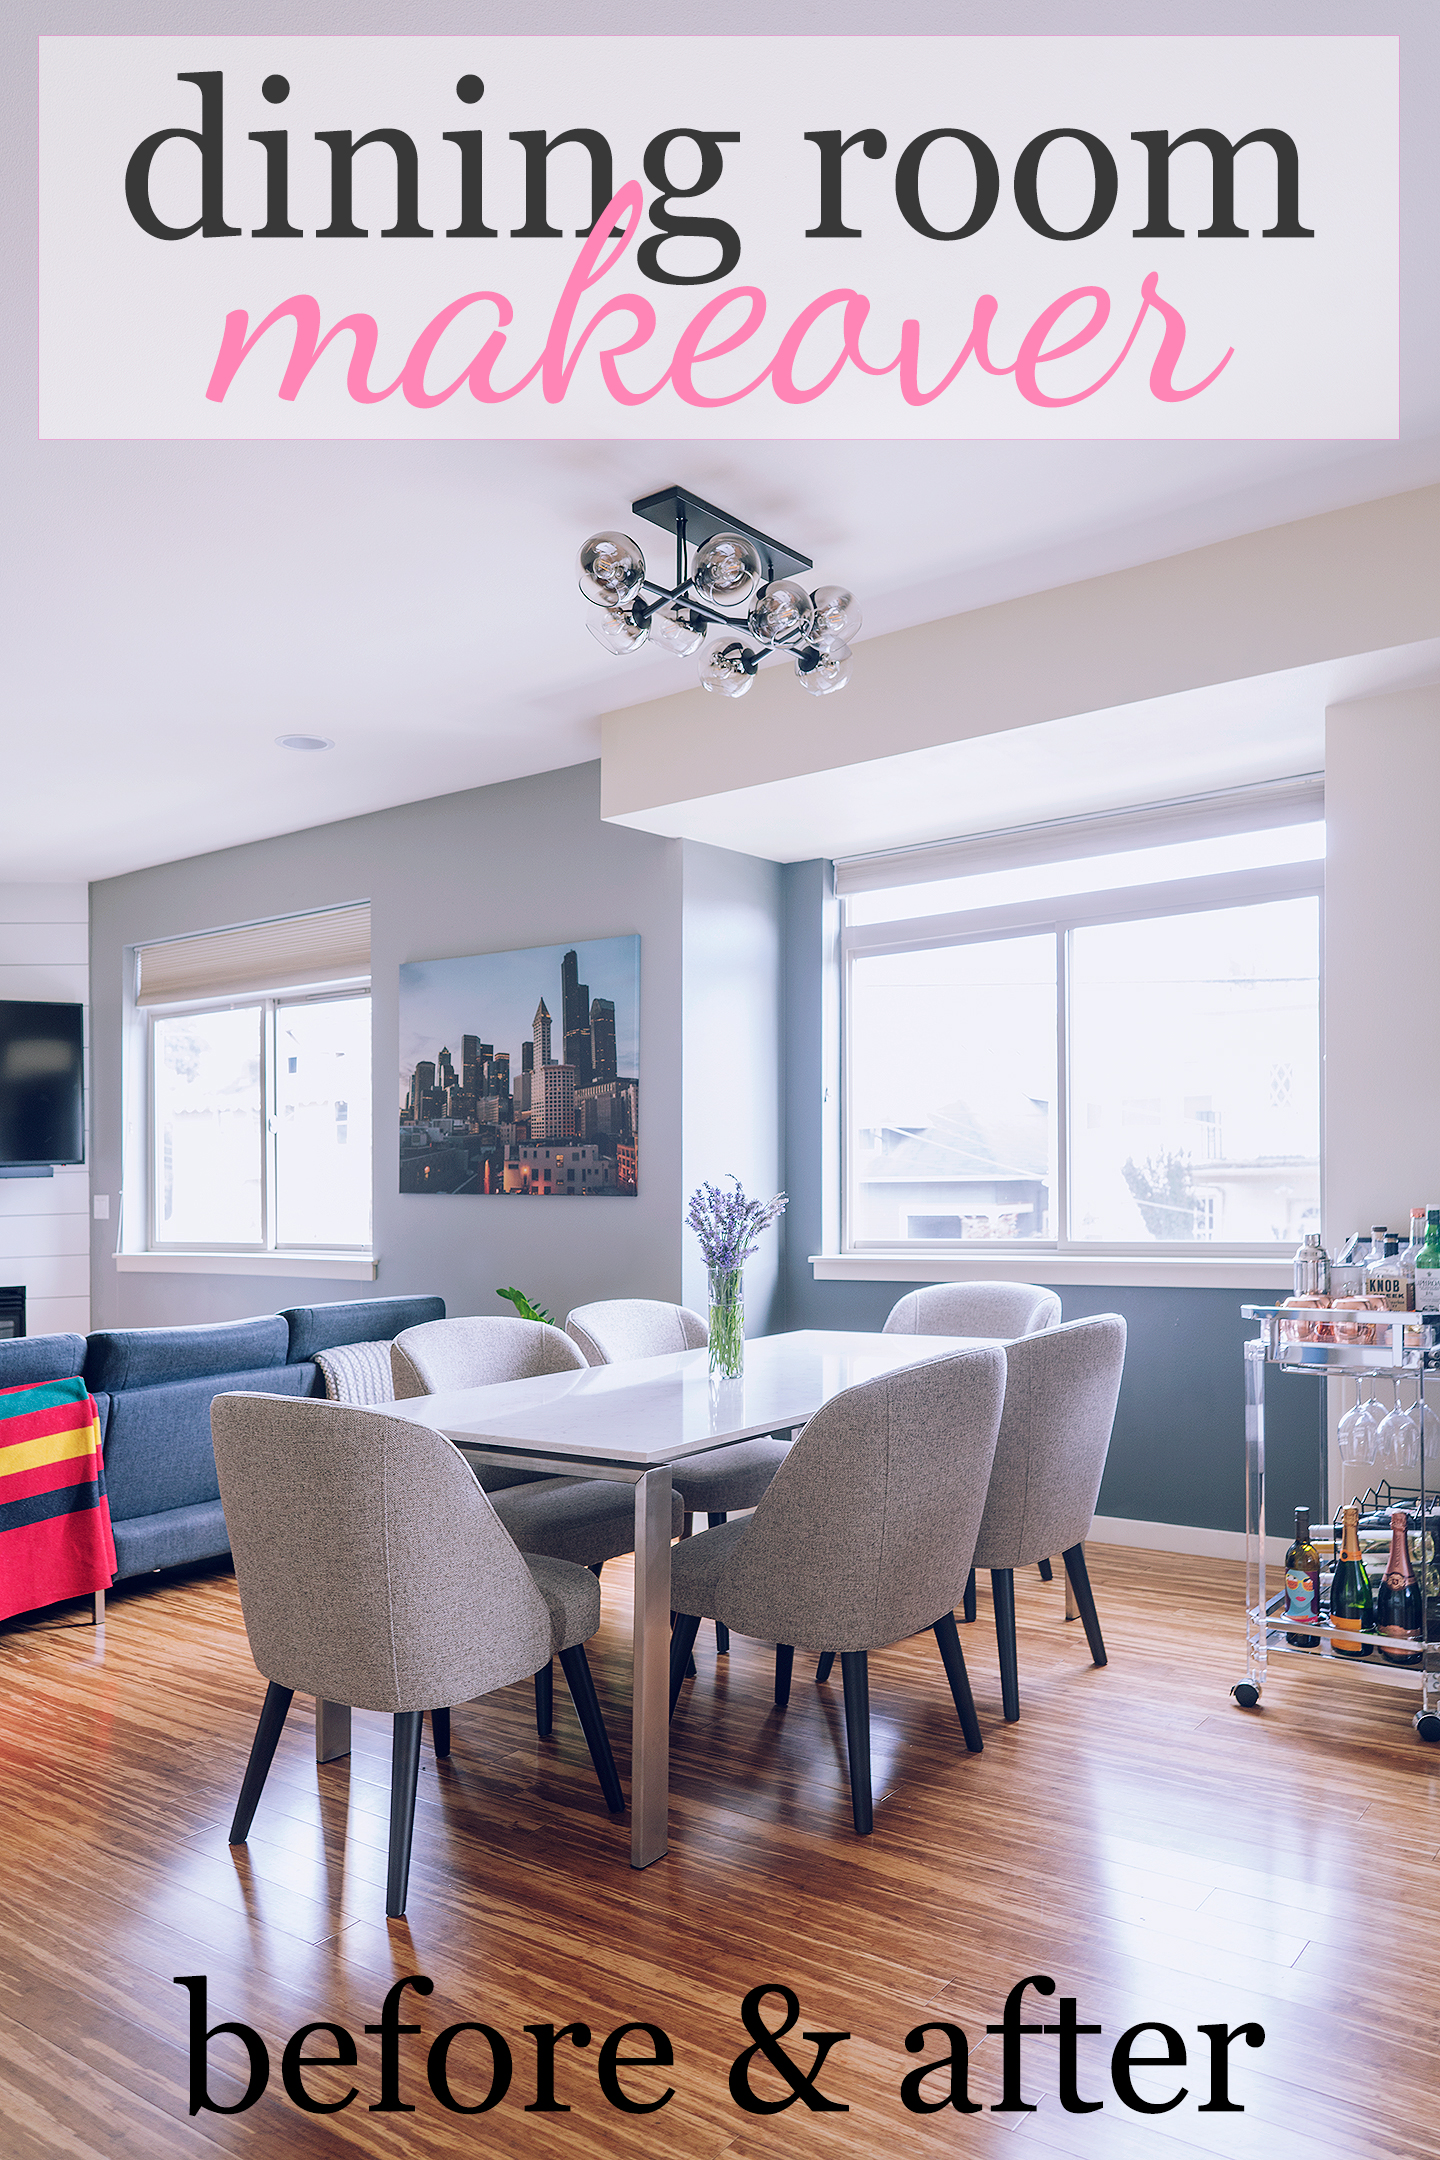 Revealing My Dining Room Makeover with Room & Board! [Part 2/2]